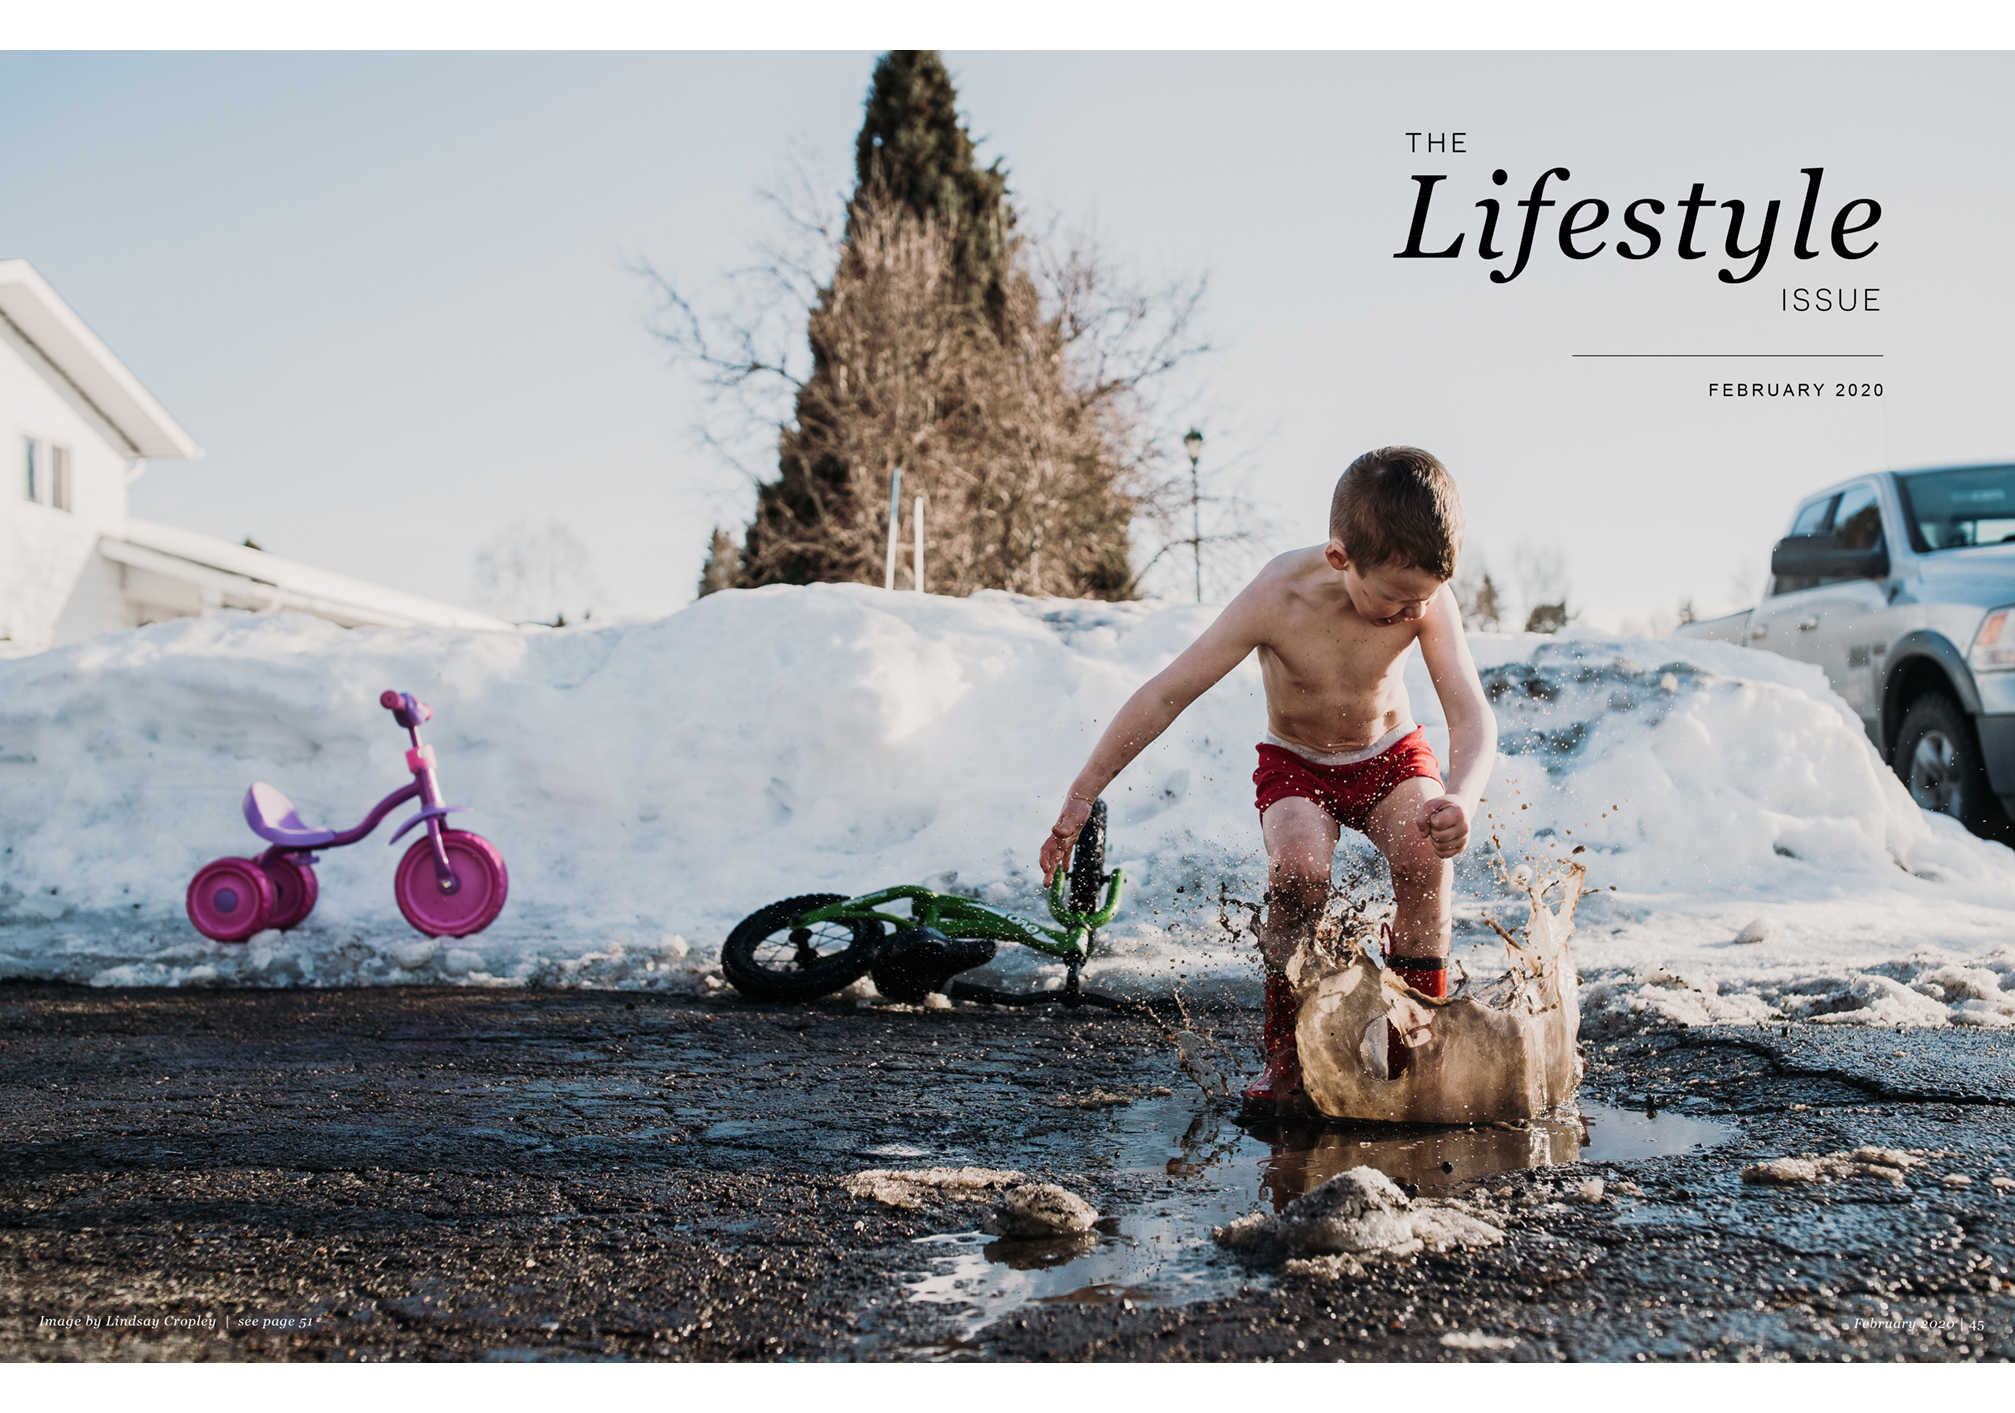 The Lifestyle Issue, February 2020, boy jumping in mud, snow pile, truck, tricycle, bike